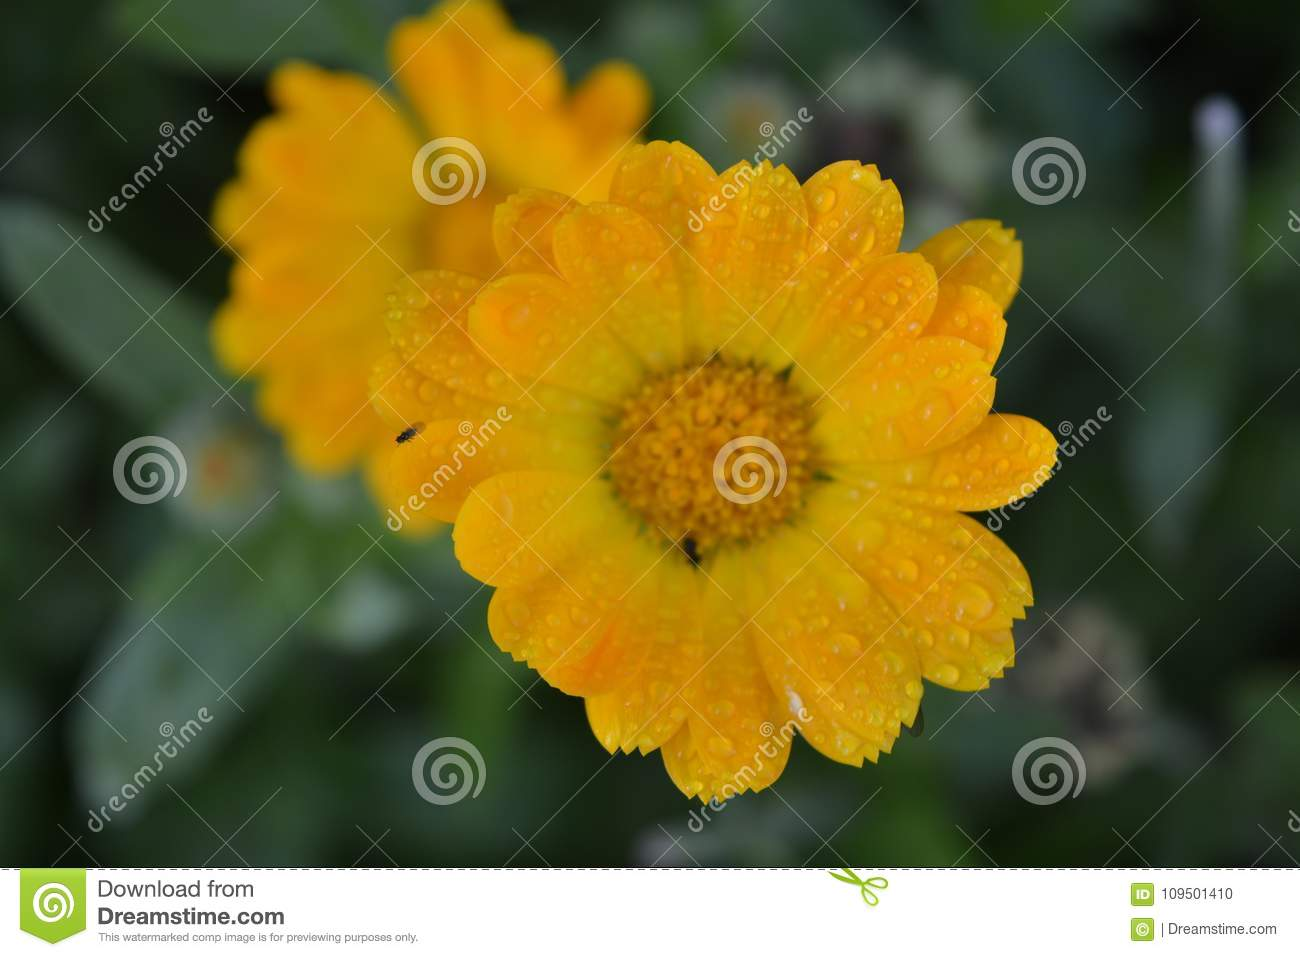 The Pot Marigold Calendula Officialis Orange Flower With Small